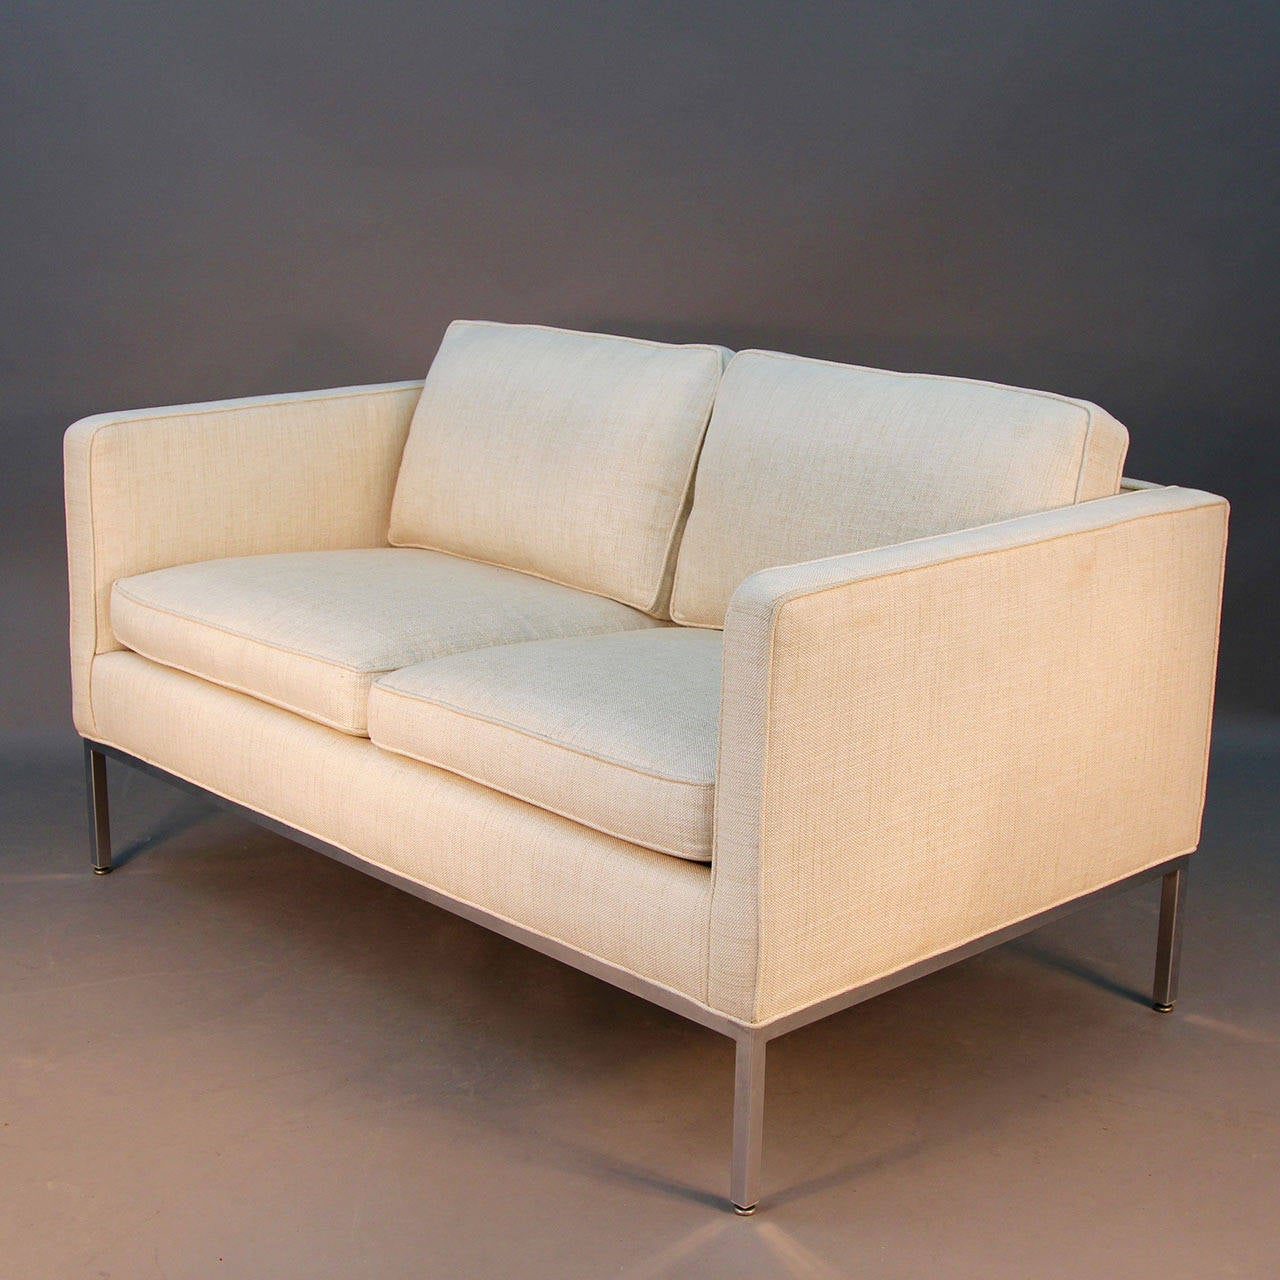 Beautiful off-white linen loveseat sofa with chrome legs and frame design by Milo Baughman for Thayer Coggin with original label. Incredible lines and simple form. Very comfortable piece.